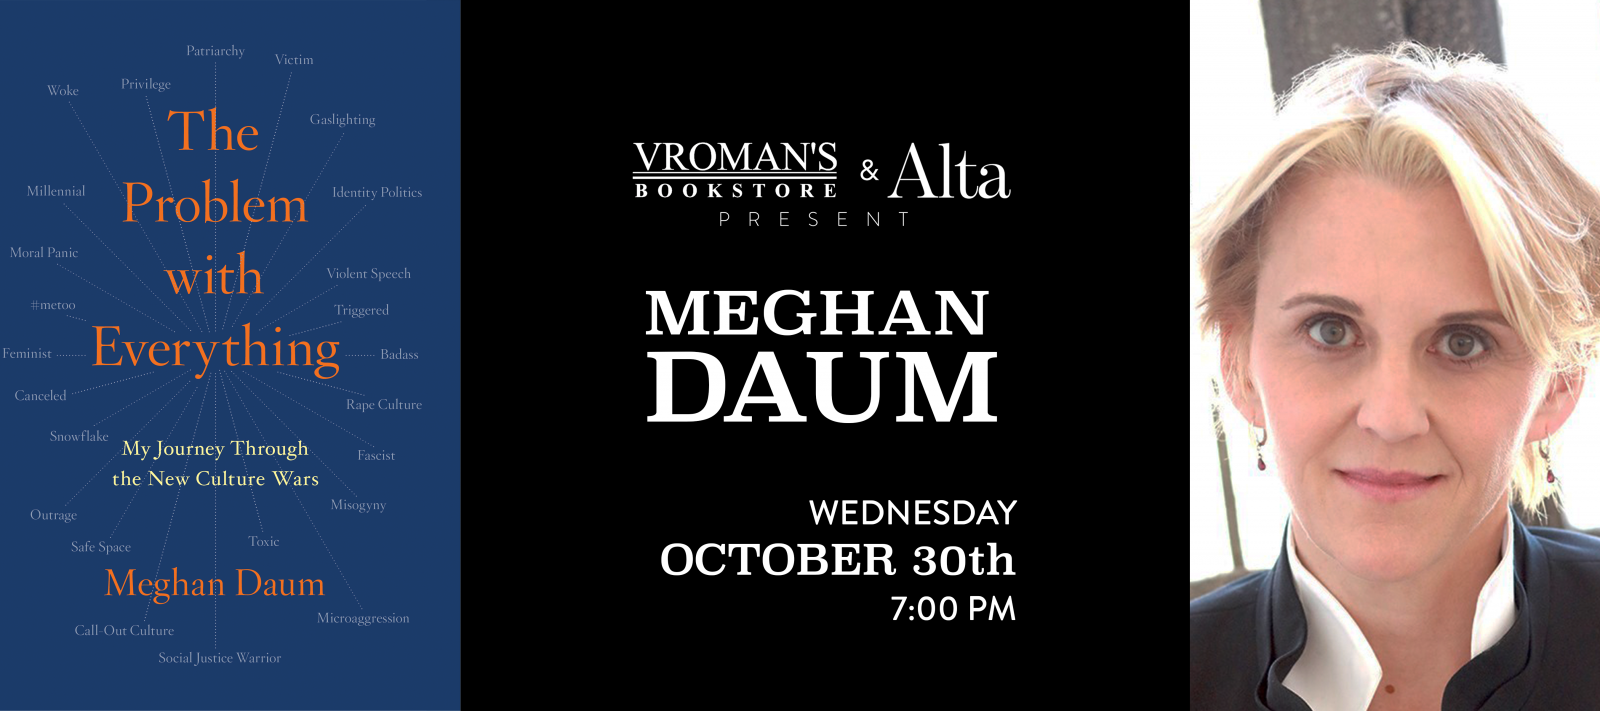 Meghan Daum book signing Wednesday October 30 at 7pm